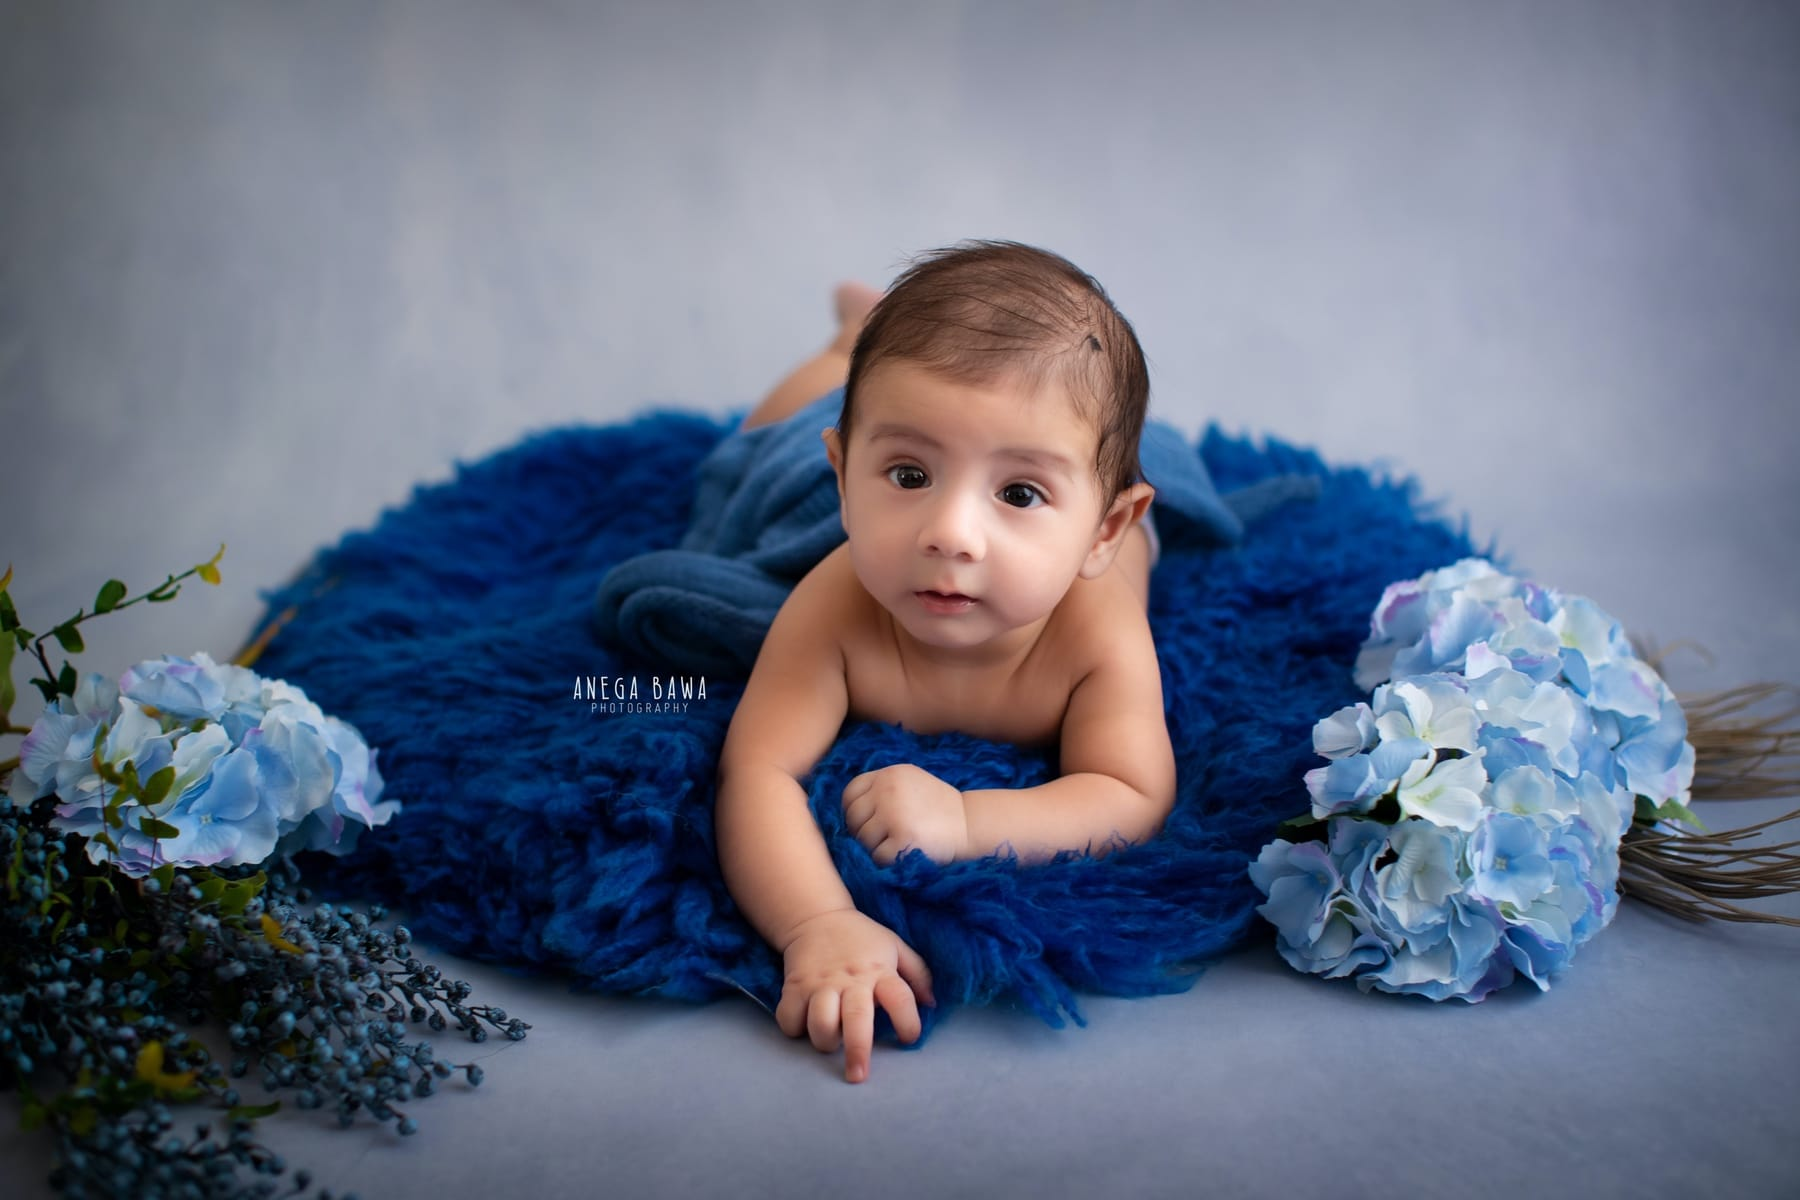 grey floral baby photography delhi 4 months baby boy photoshoot gurgaon anega bawa